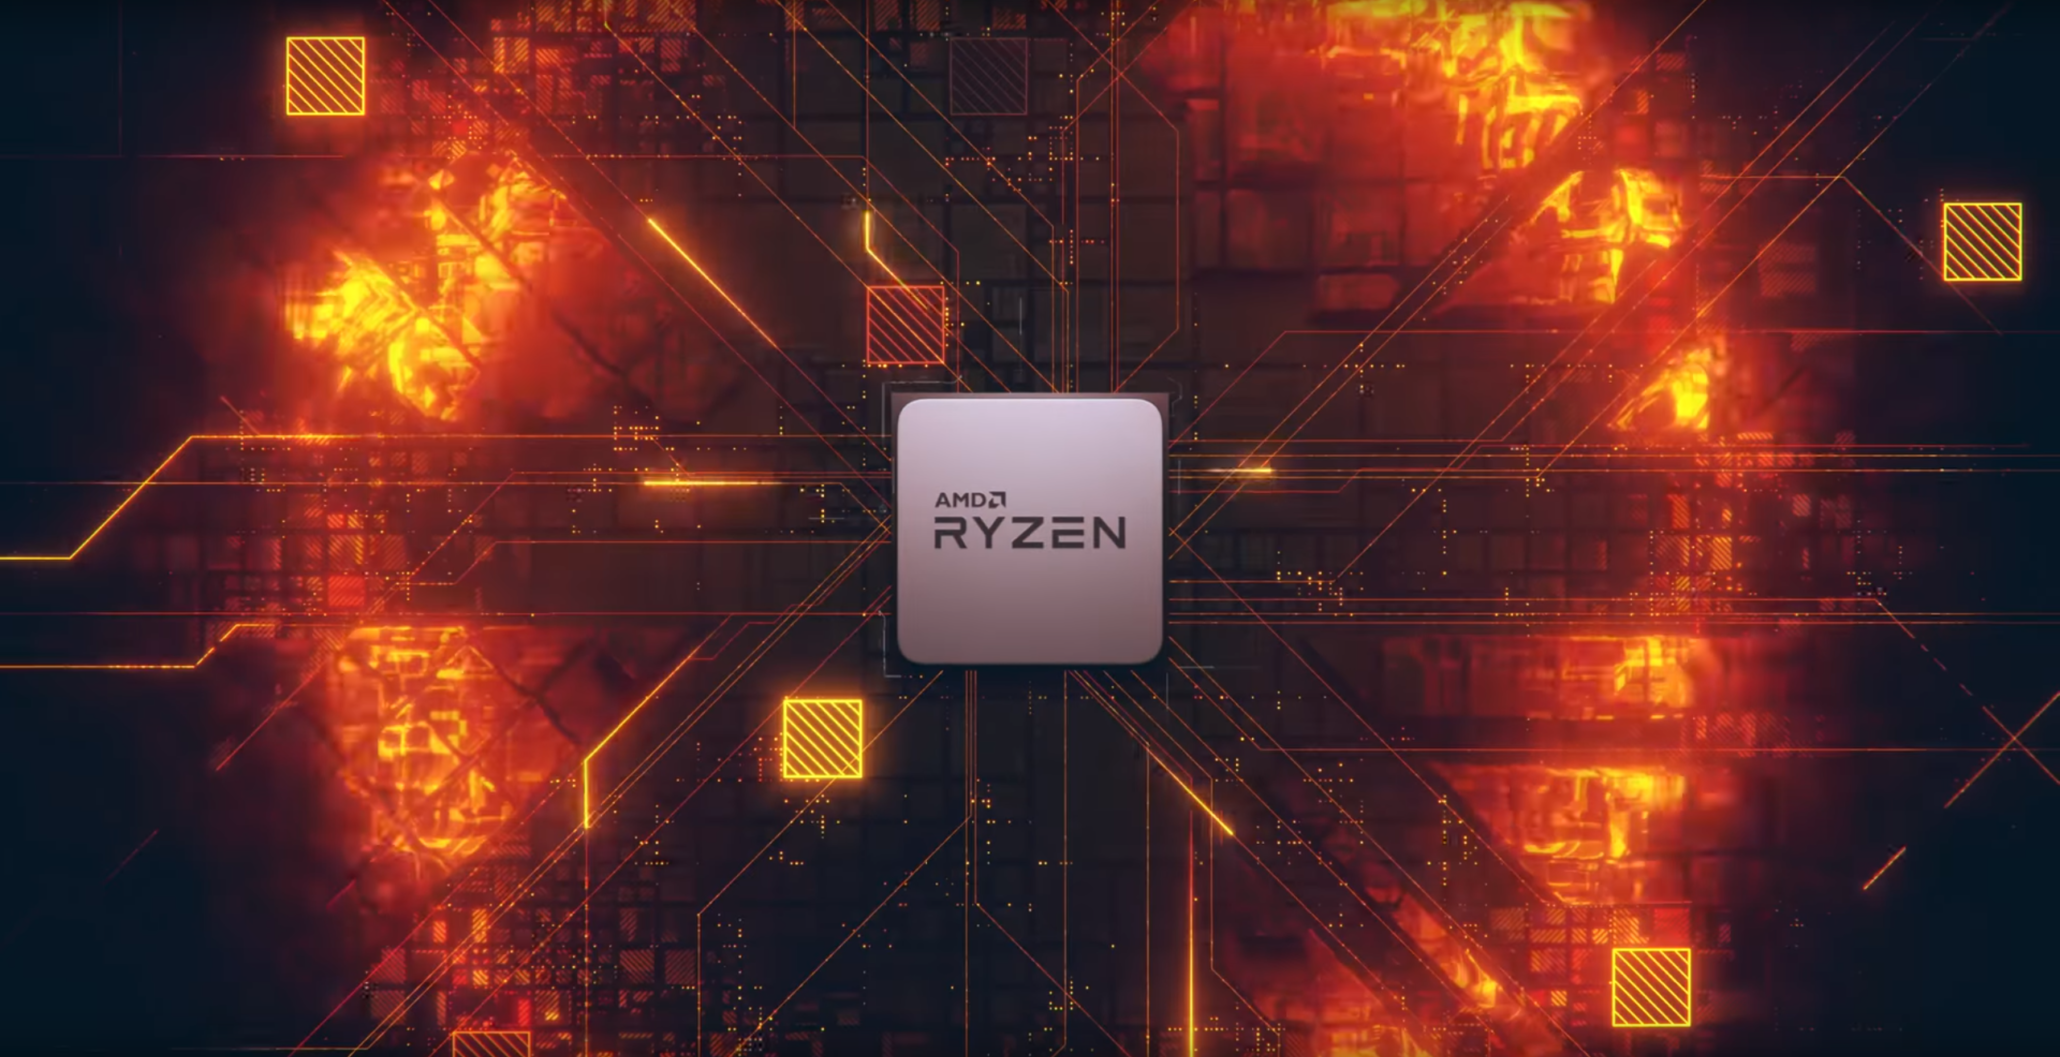 AMD Ryzen 7 3000 Series at Computex 2019